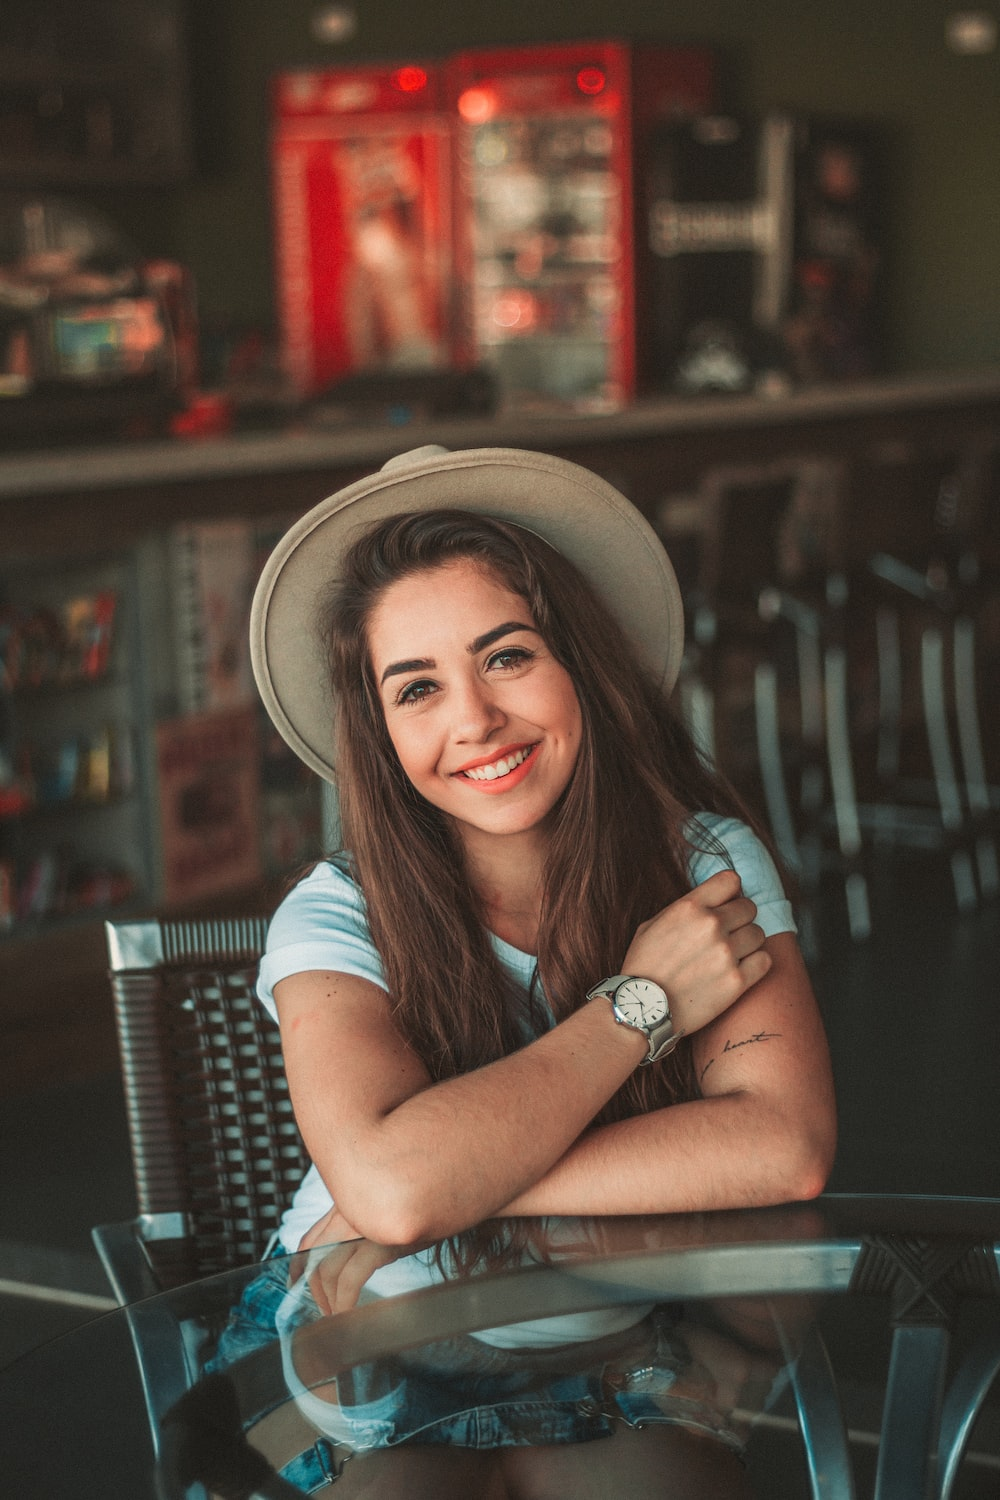 woman sitting while smiling and wearing hat